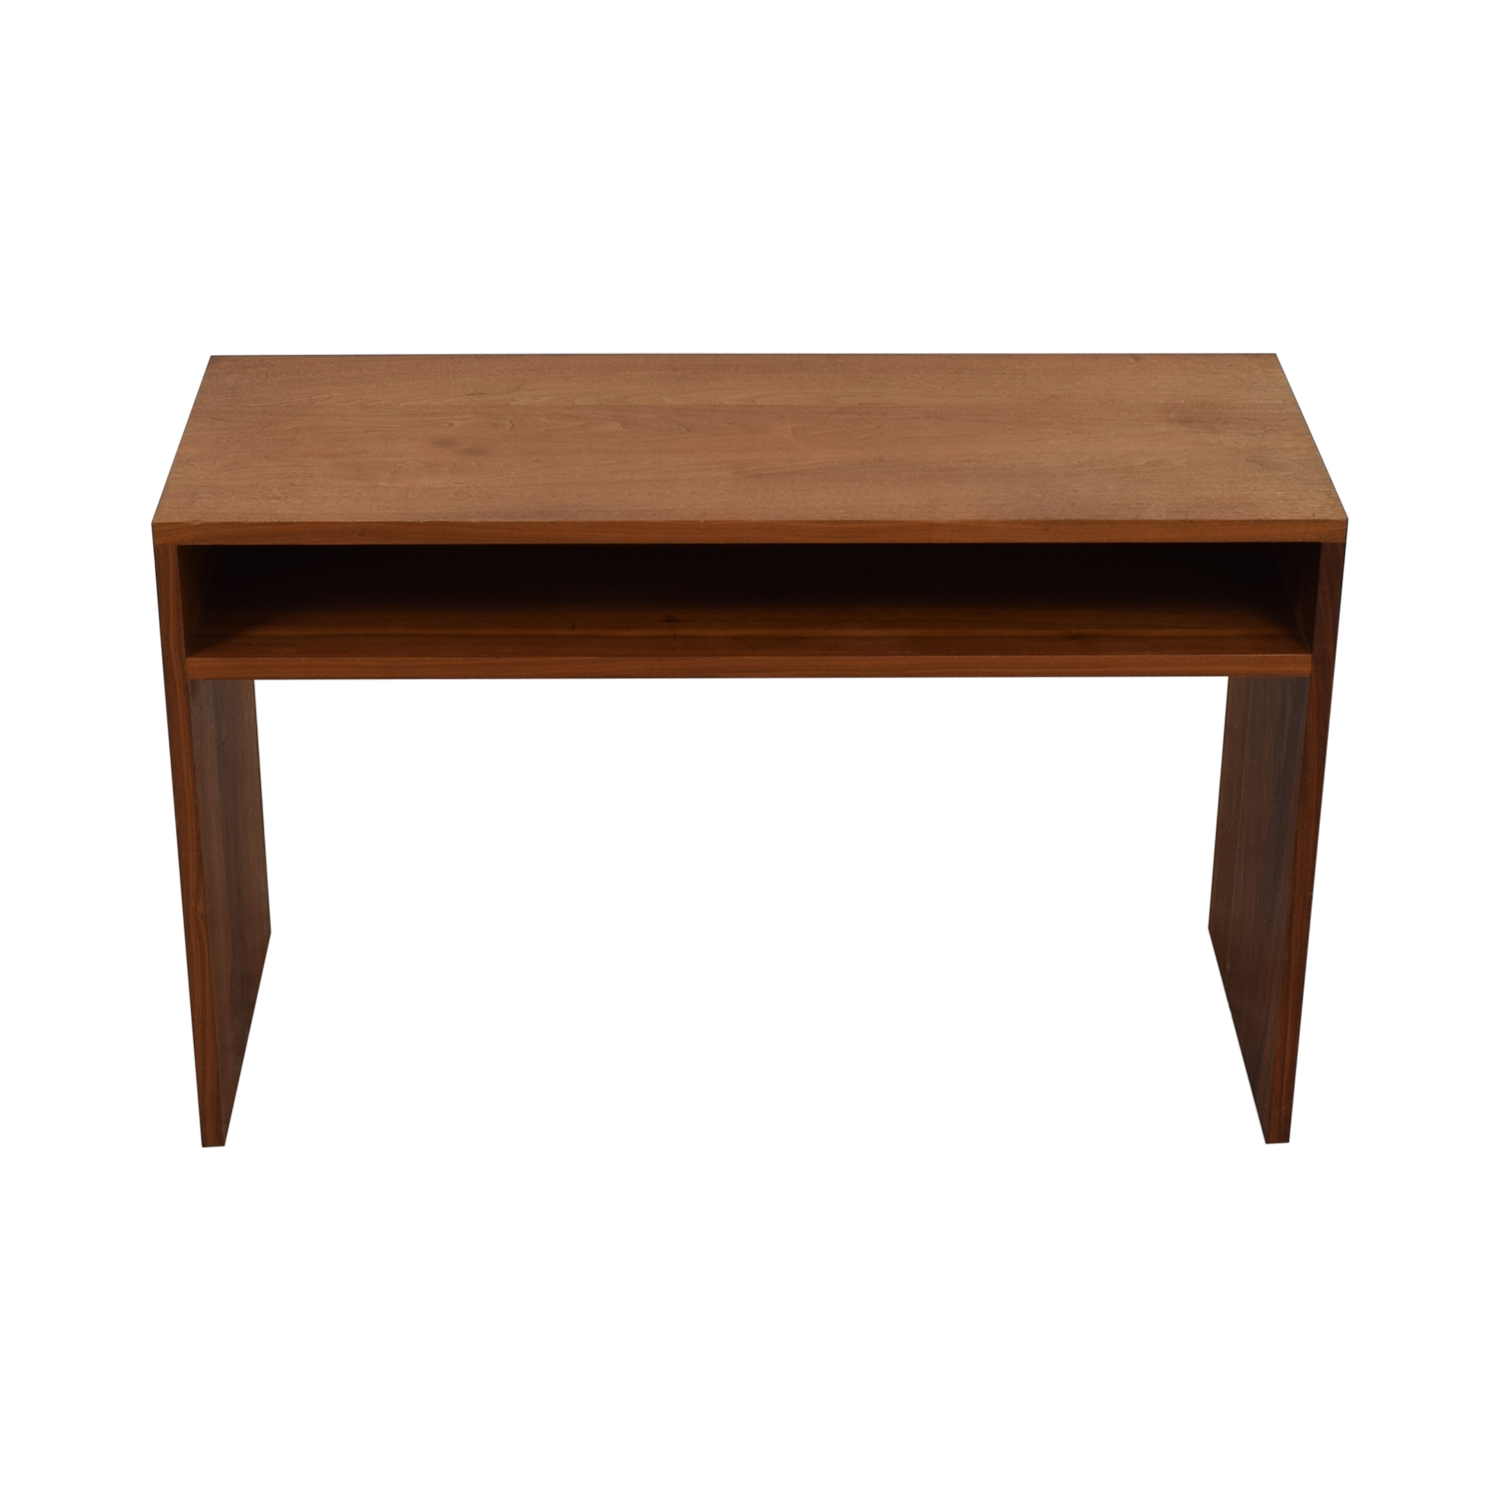 Custom Solid Walnut Desk with Enclosed Shelf Space sale